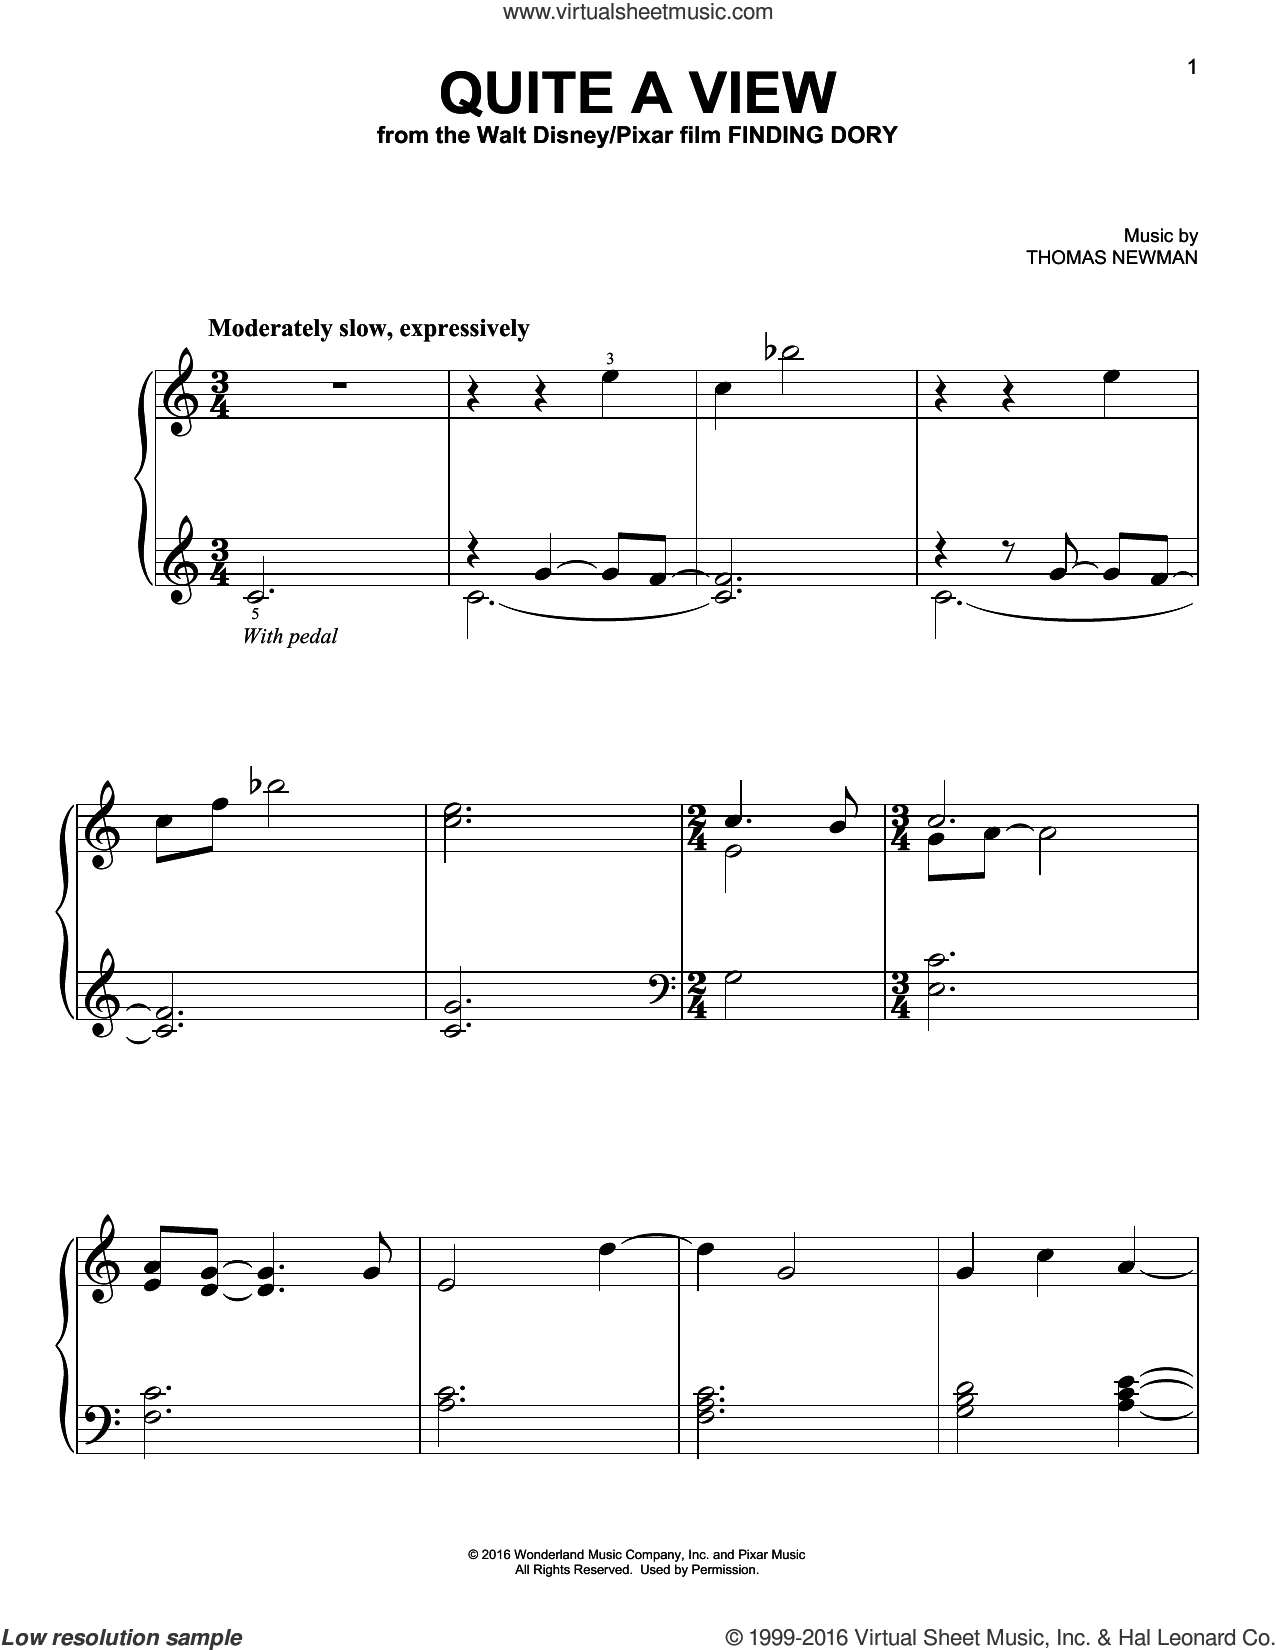 Quite A View sheet music for piano solo by Thomas Newman, easy skill level